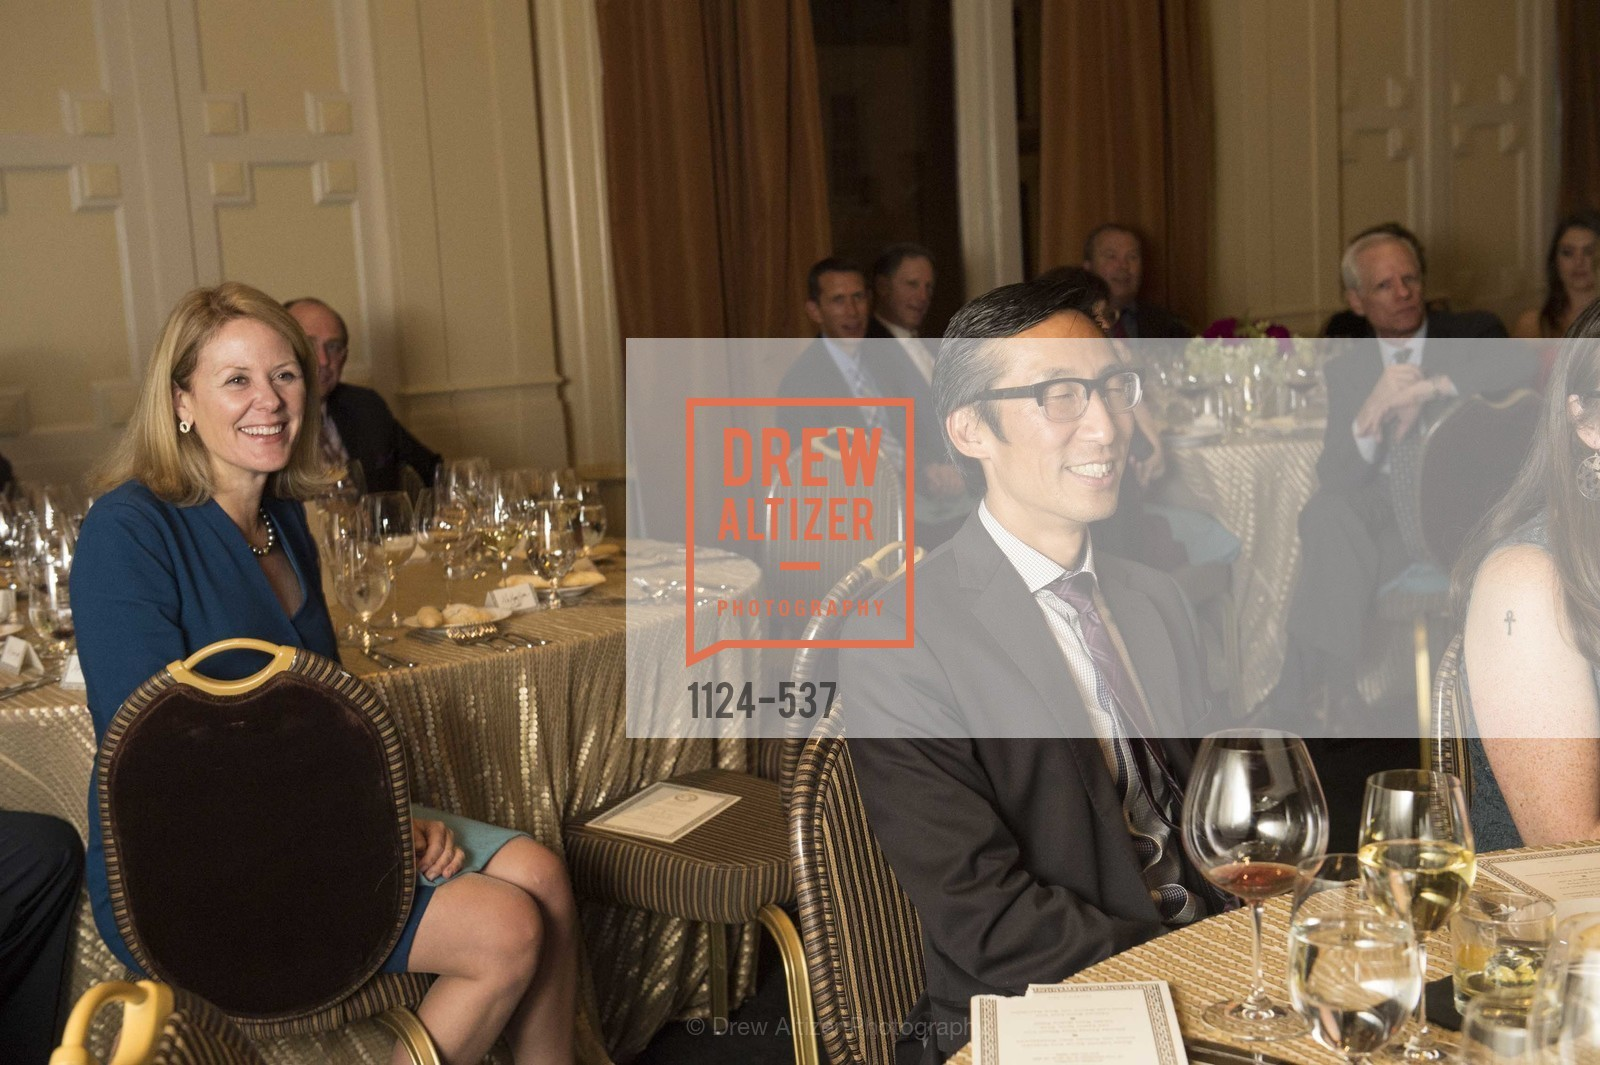 Eric Mar, TOP OF THE MARK'S 75TH Anniversary Party, US, November 6th, 2014,Drew Altizer, Drew Altizer Photography, full-service agency, private events, San Francisco photographer, photographer california